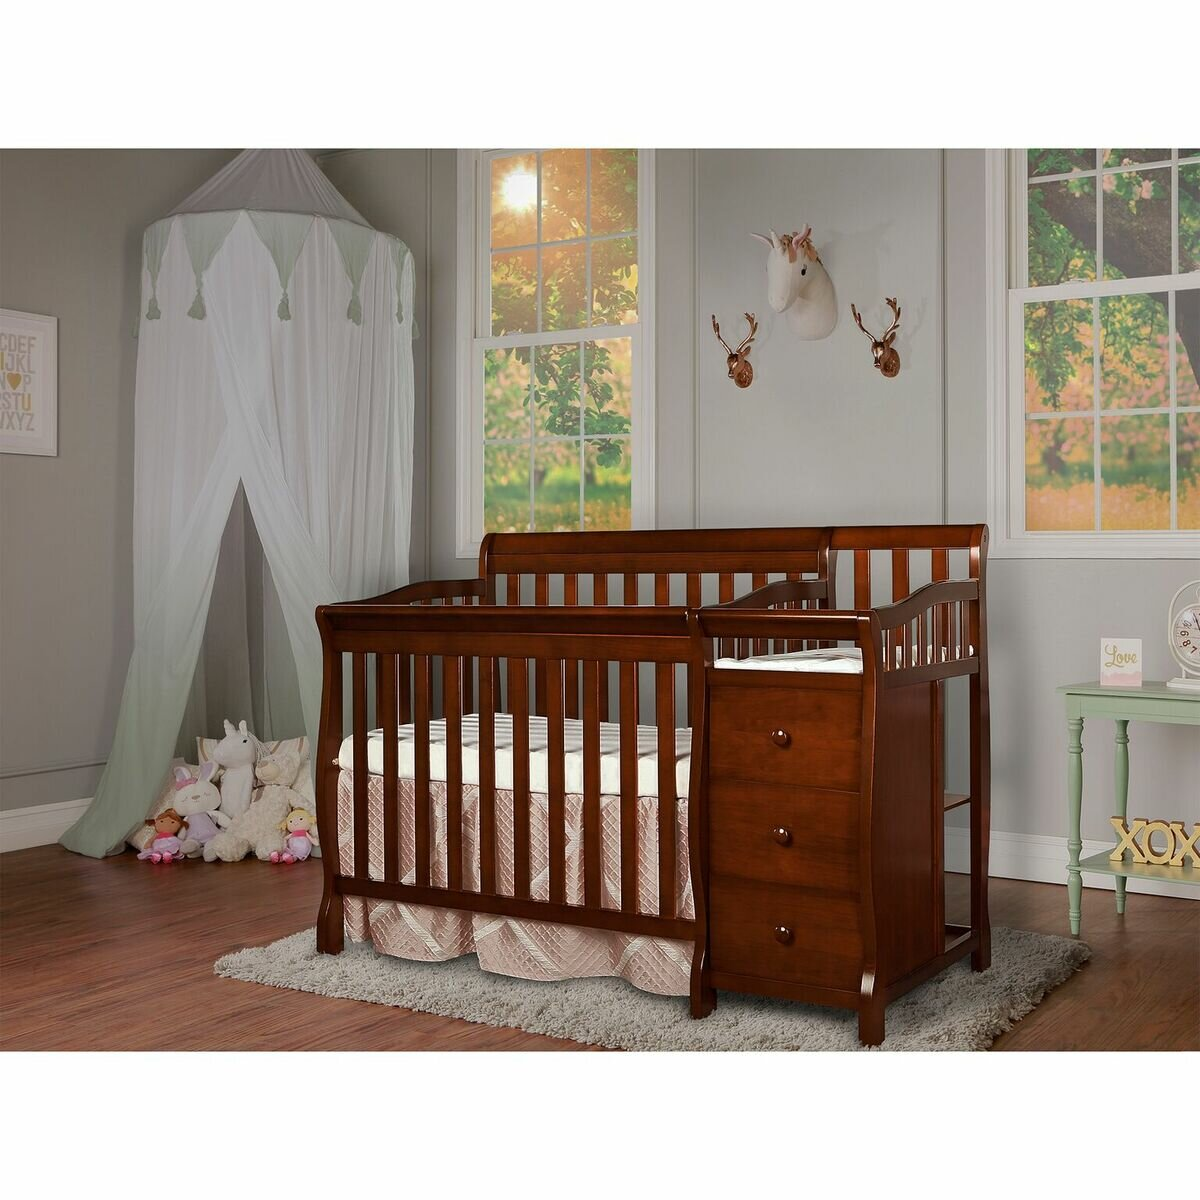 made union sets color pine mattress mini wood dimensions cribs levels chic bedding baby crib from finished fresh convertible four in pretty adjustable gray nursery